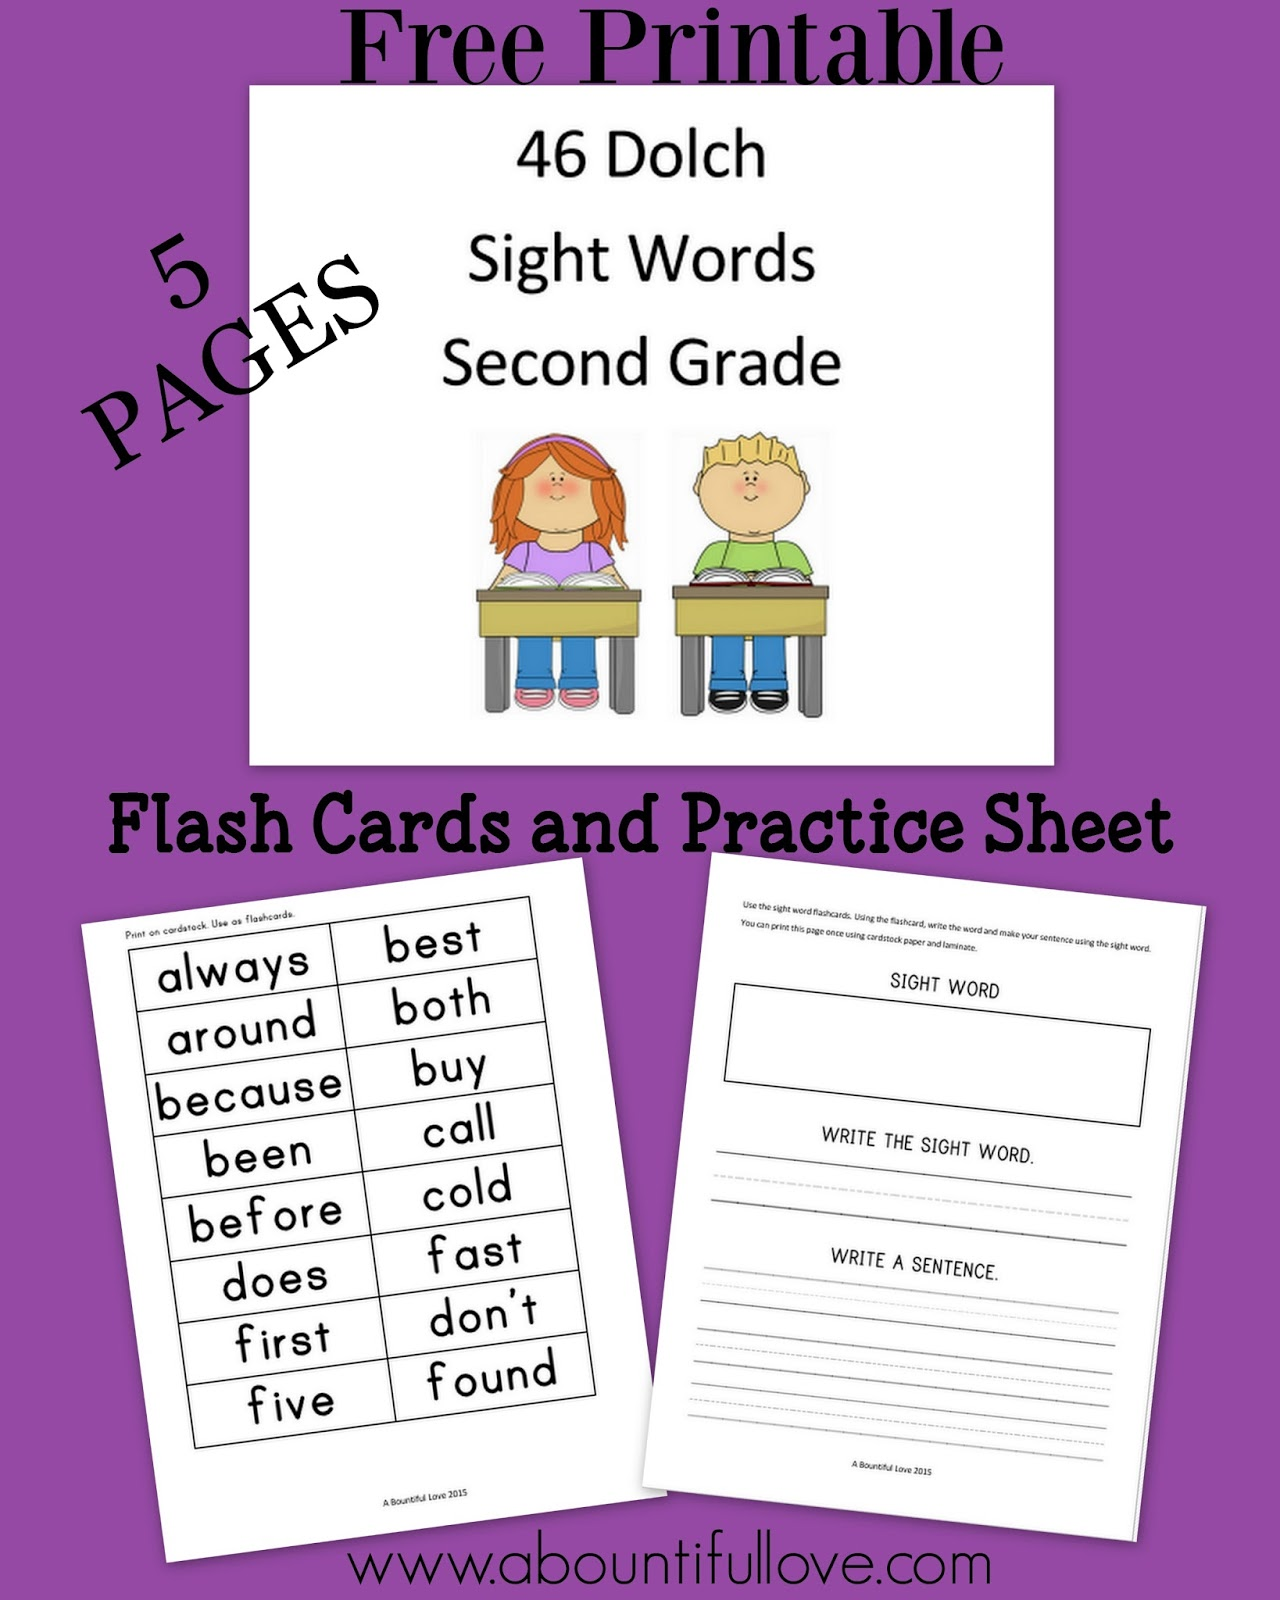 46 Dolch Sight Words For Second Grade